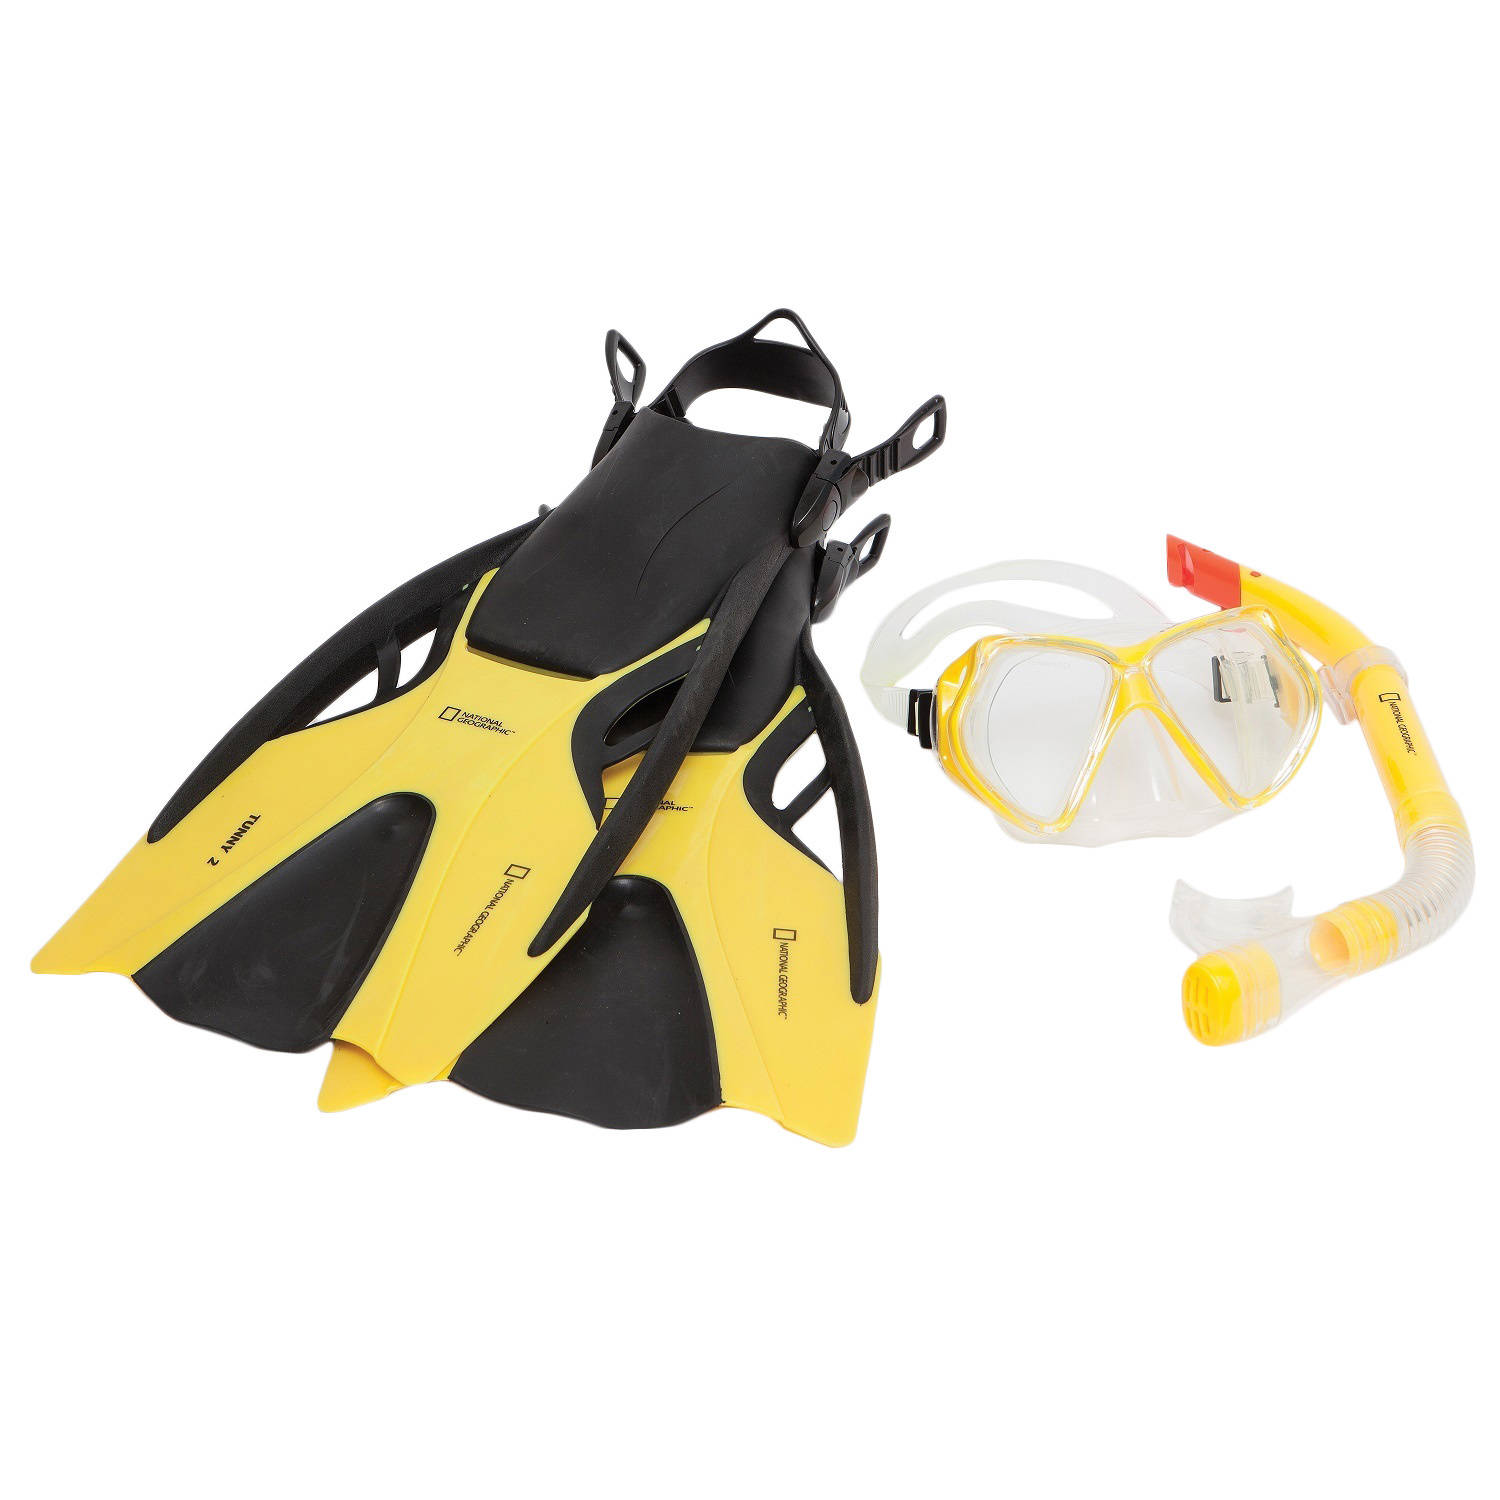 Natl Geographic Snorkeler Tunny 2 Set Yellow/Black ML/L 9-12